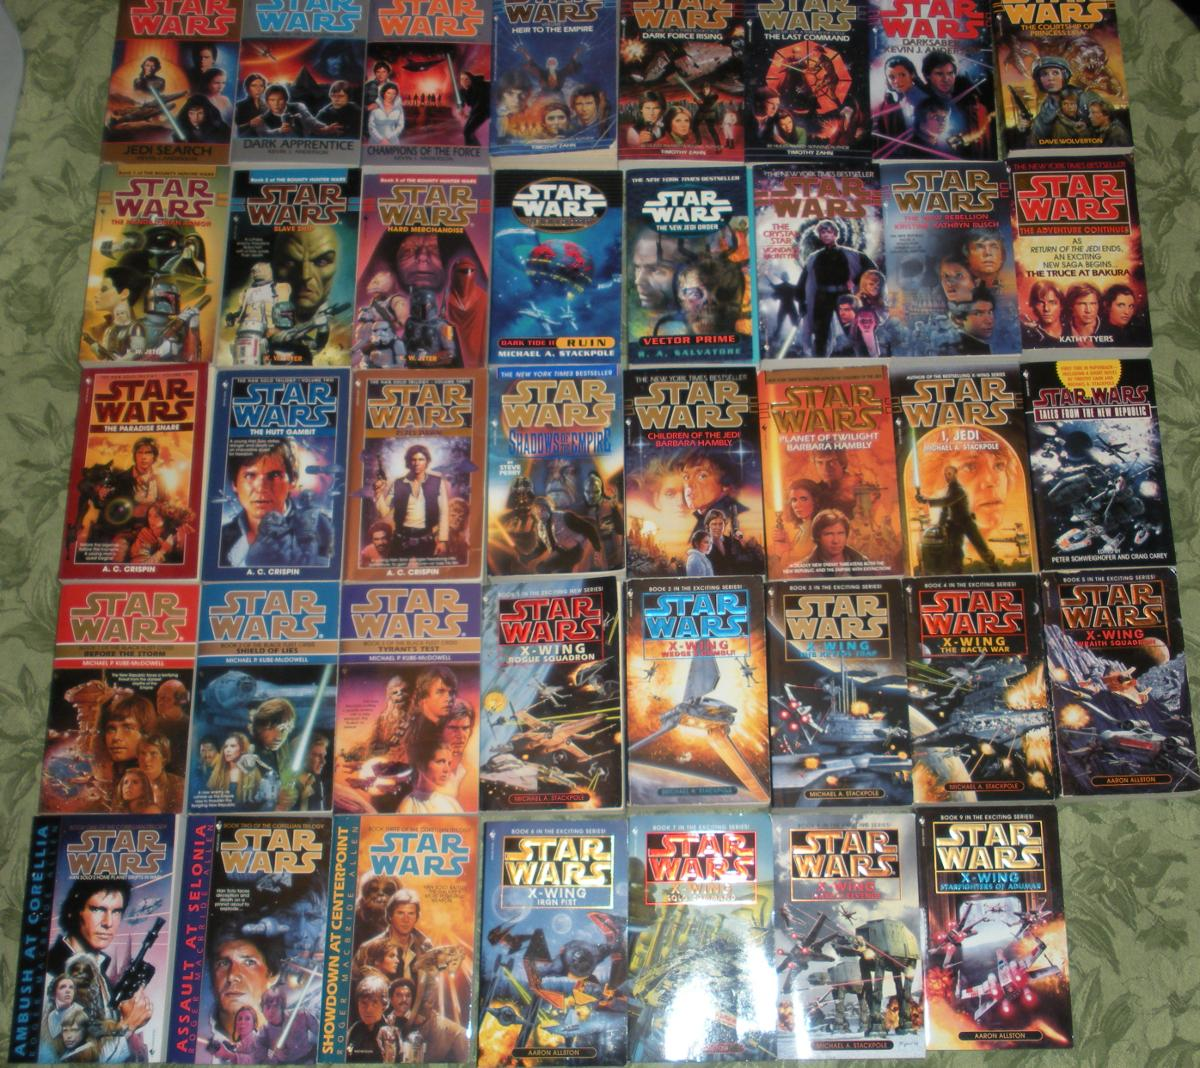 Just a tiny sliver of the original Star Wars Expanded Universe